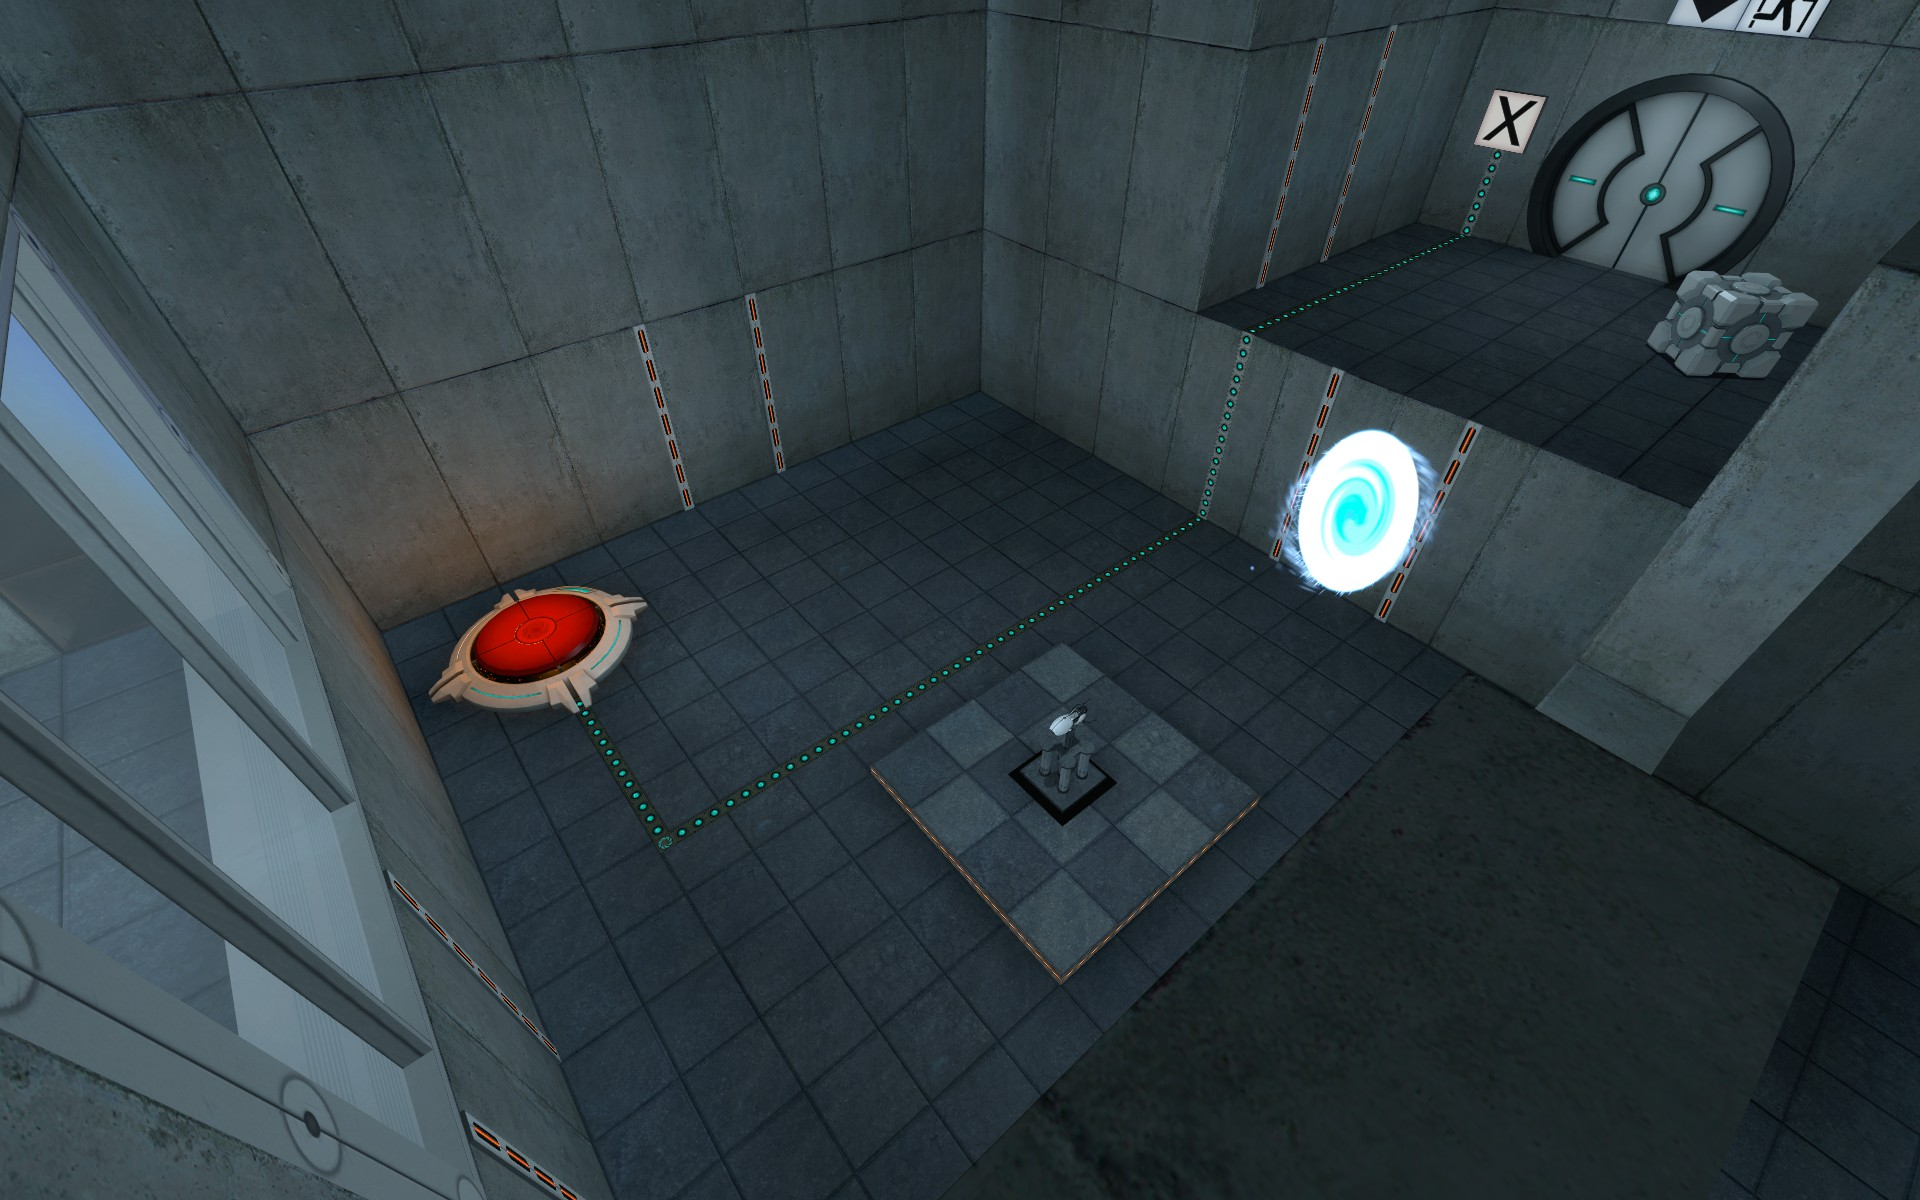 Test Chamber 02 Image 02